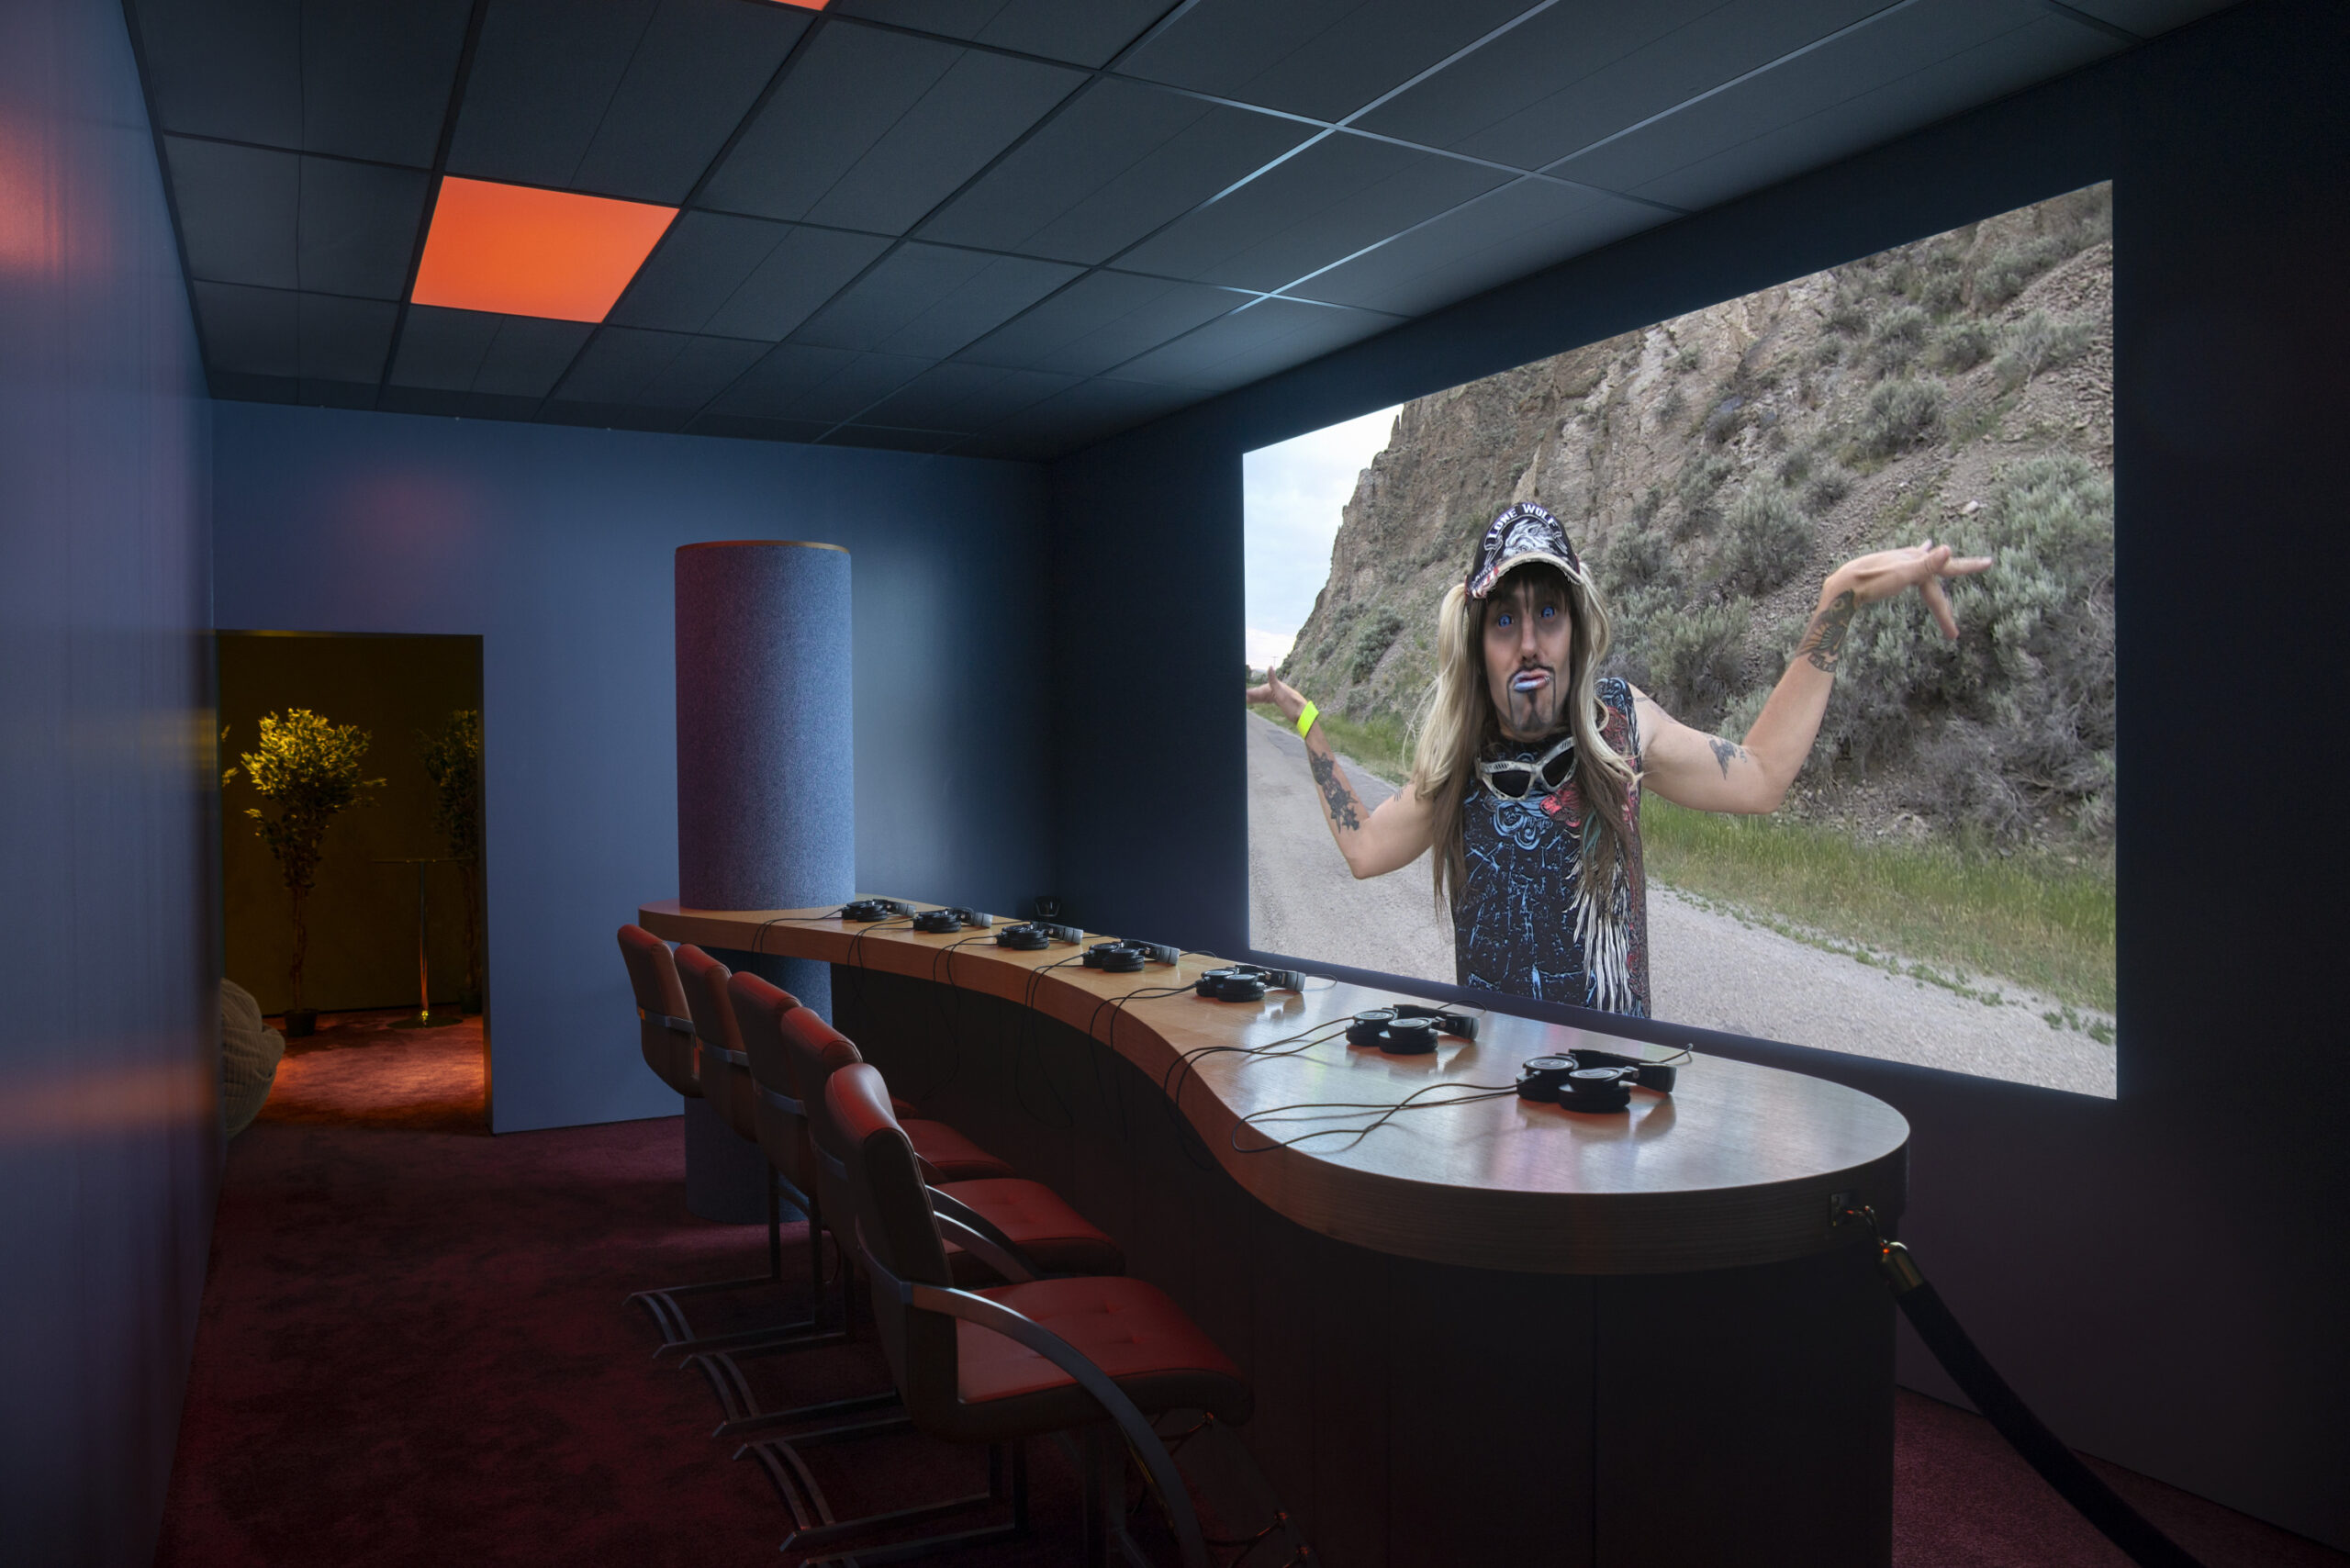 Lizzie Fitch and Ryan Trecartin. Installation view of Wouldy's Grill at the Baltimore Museum of Art, 2018. Photo by Mitro Hood.